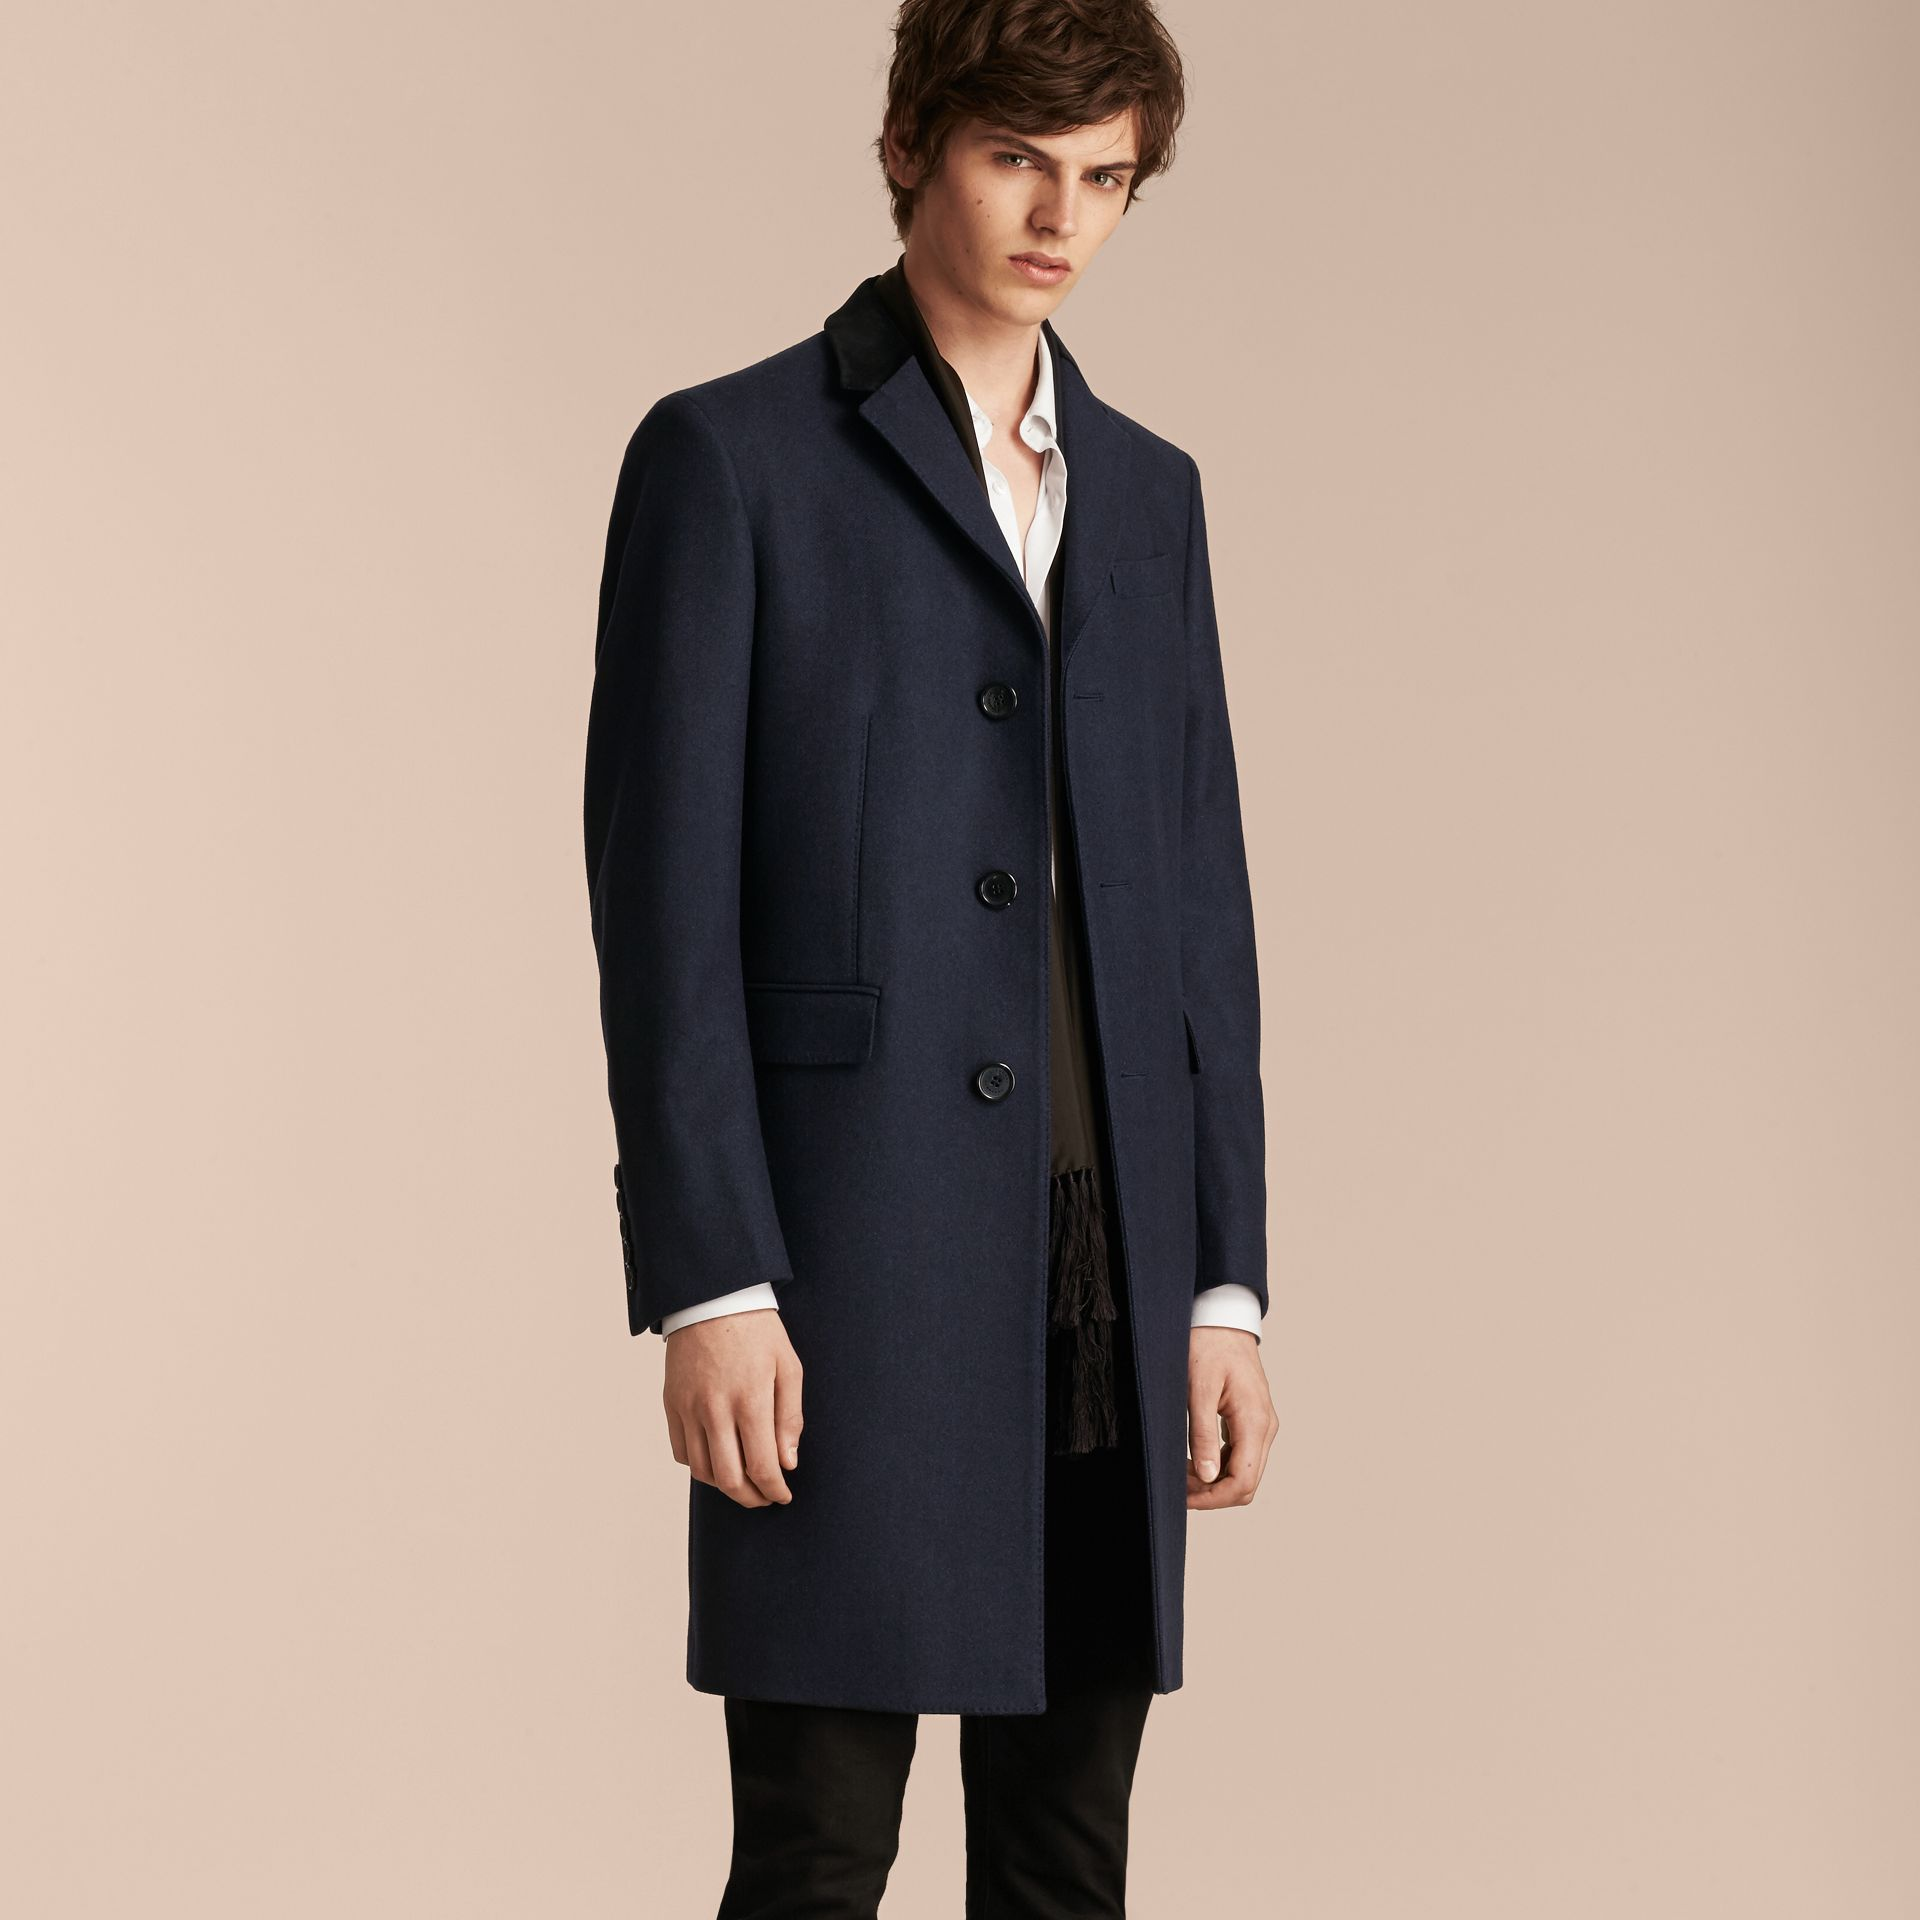 Storm blue Wool Cashmere Coat with Velvet Collar - gallery image 6